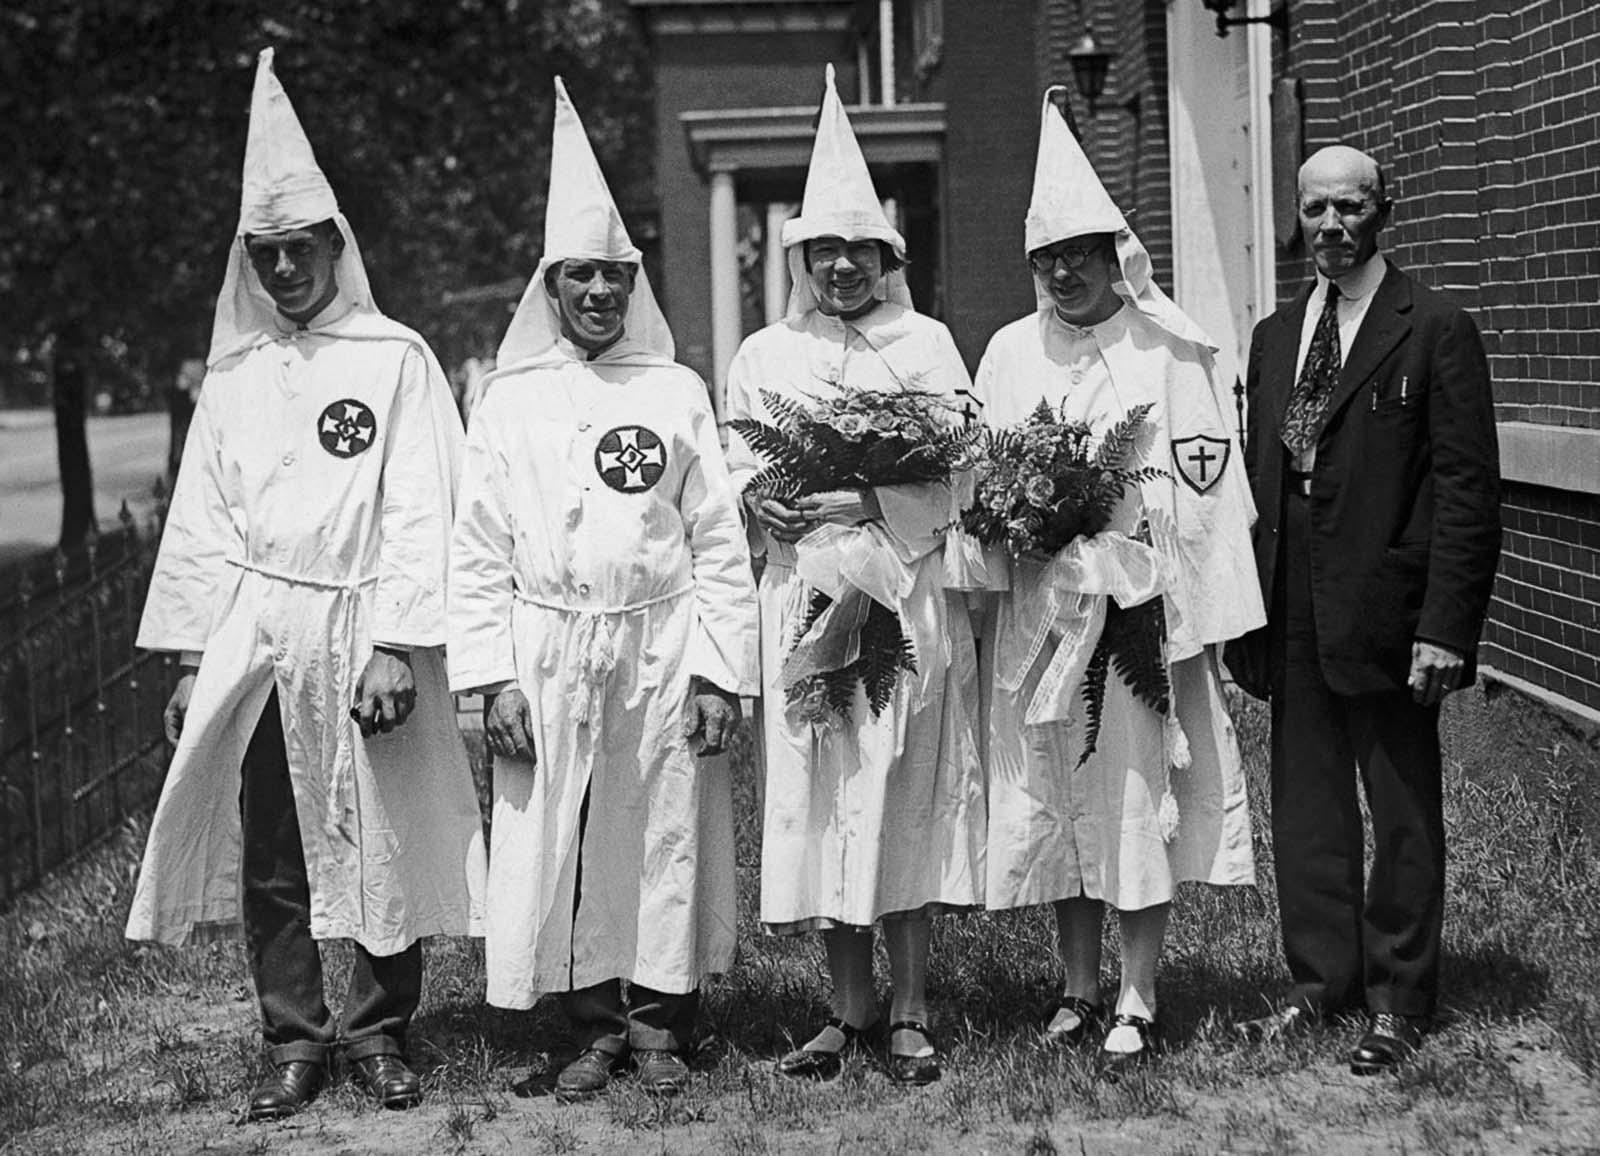 Klan members Mr. and Mrs. Charles E. Harris pose for a wedding portrait on the day of the parade.